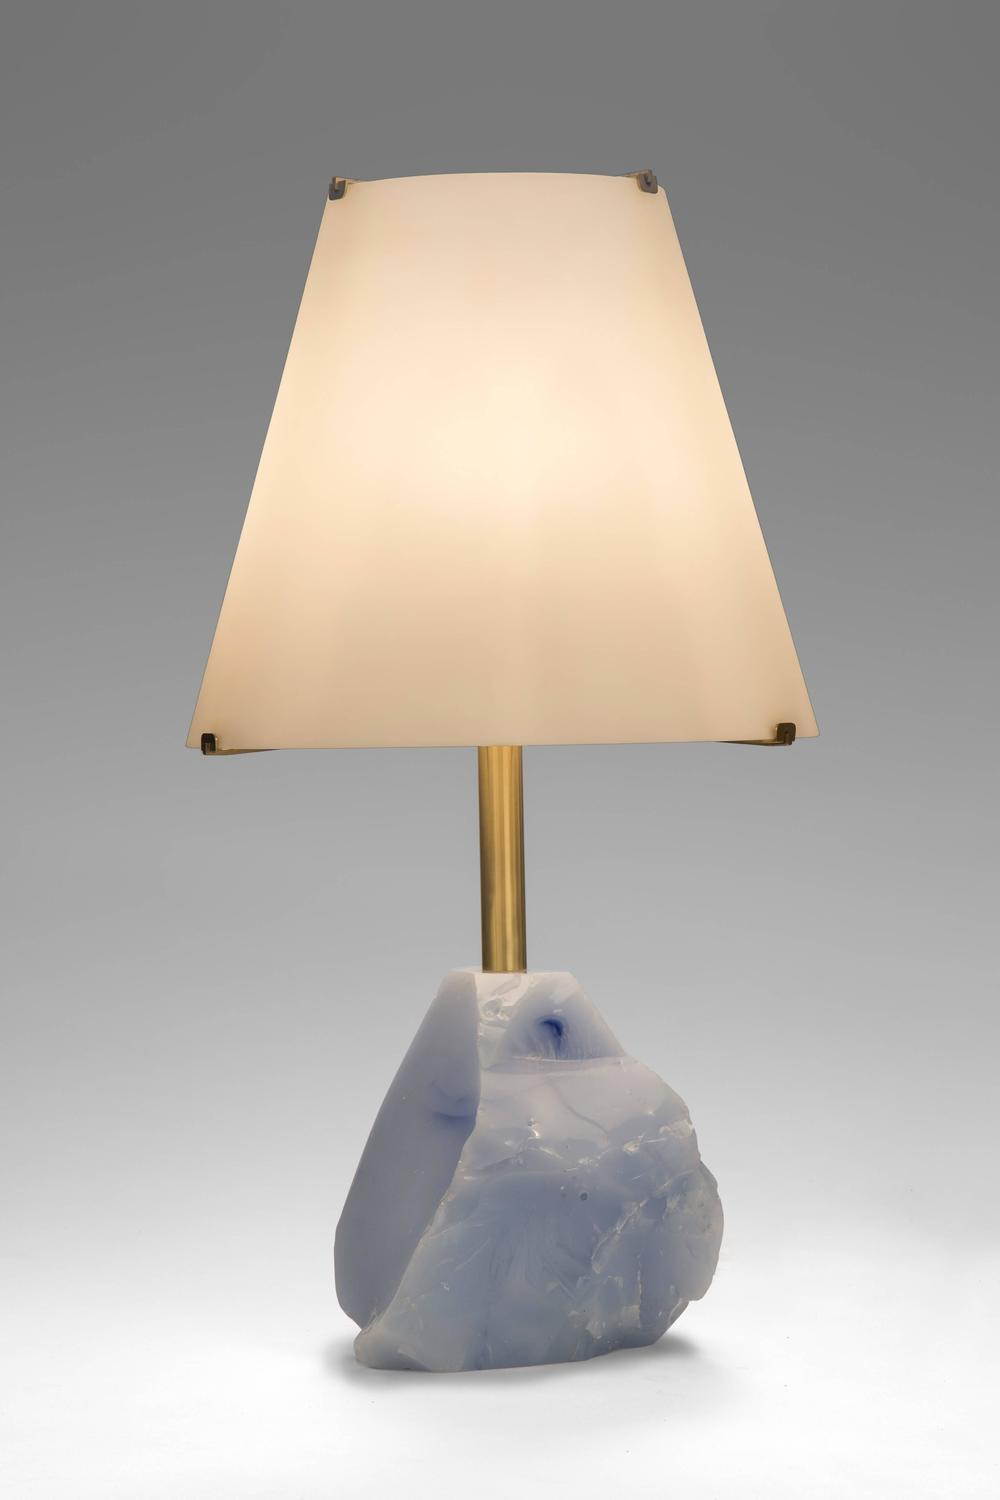 roberto rida a unique pair of iceberg glass lamps for sale at 1stdibs. Black Bedroom Furniture Sets. Home Design Ideas